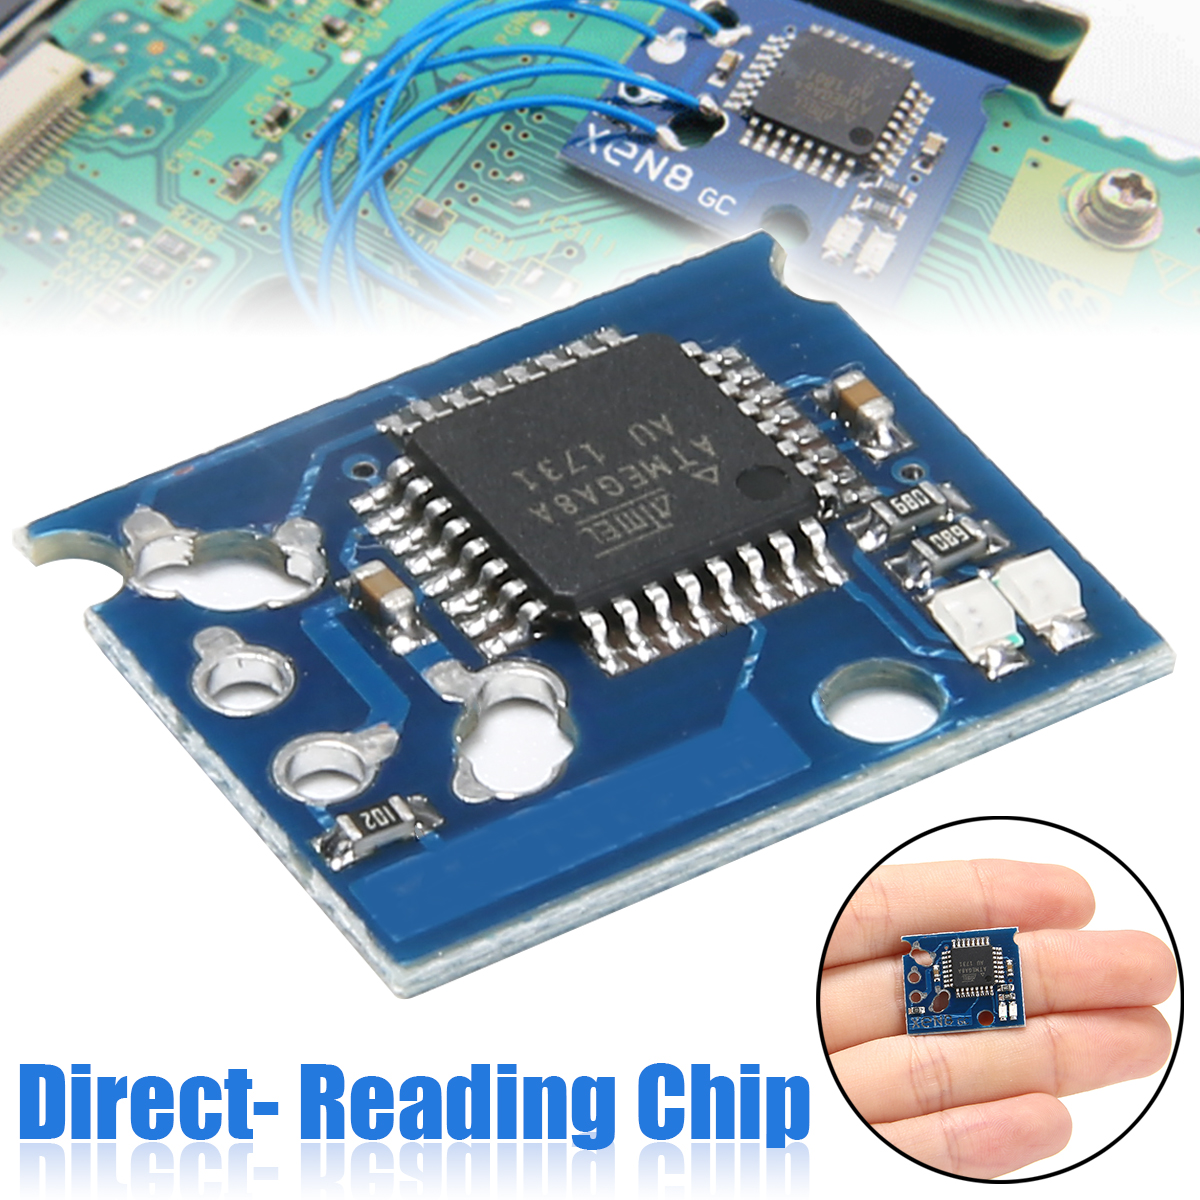 New Mod GC Direct- Reading Chip NGC For Nintendo Gamecube Game Console High Quality  NGC Direct- Reading Chip